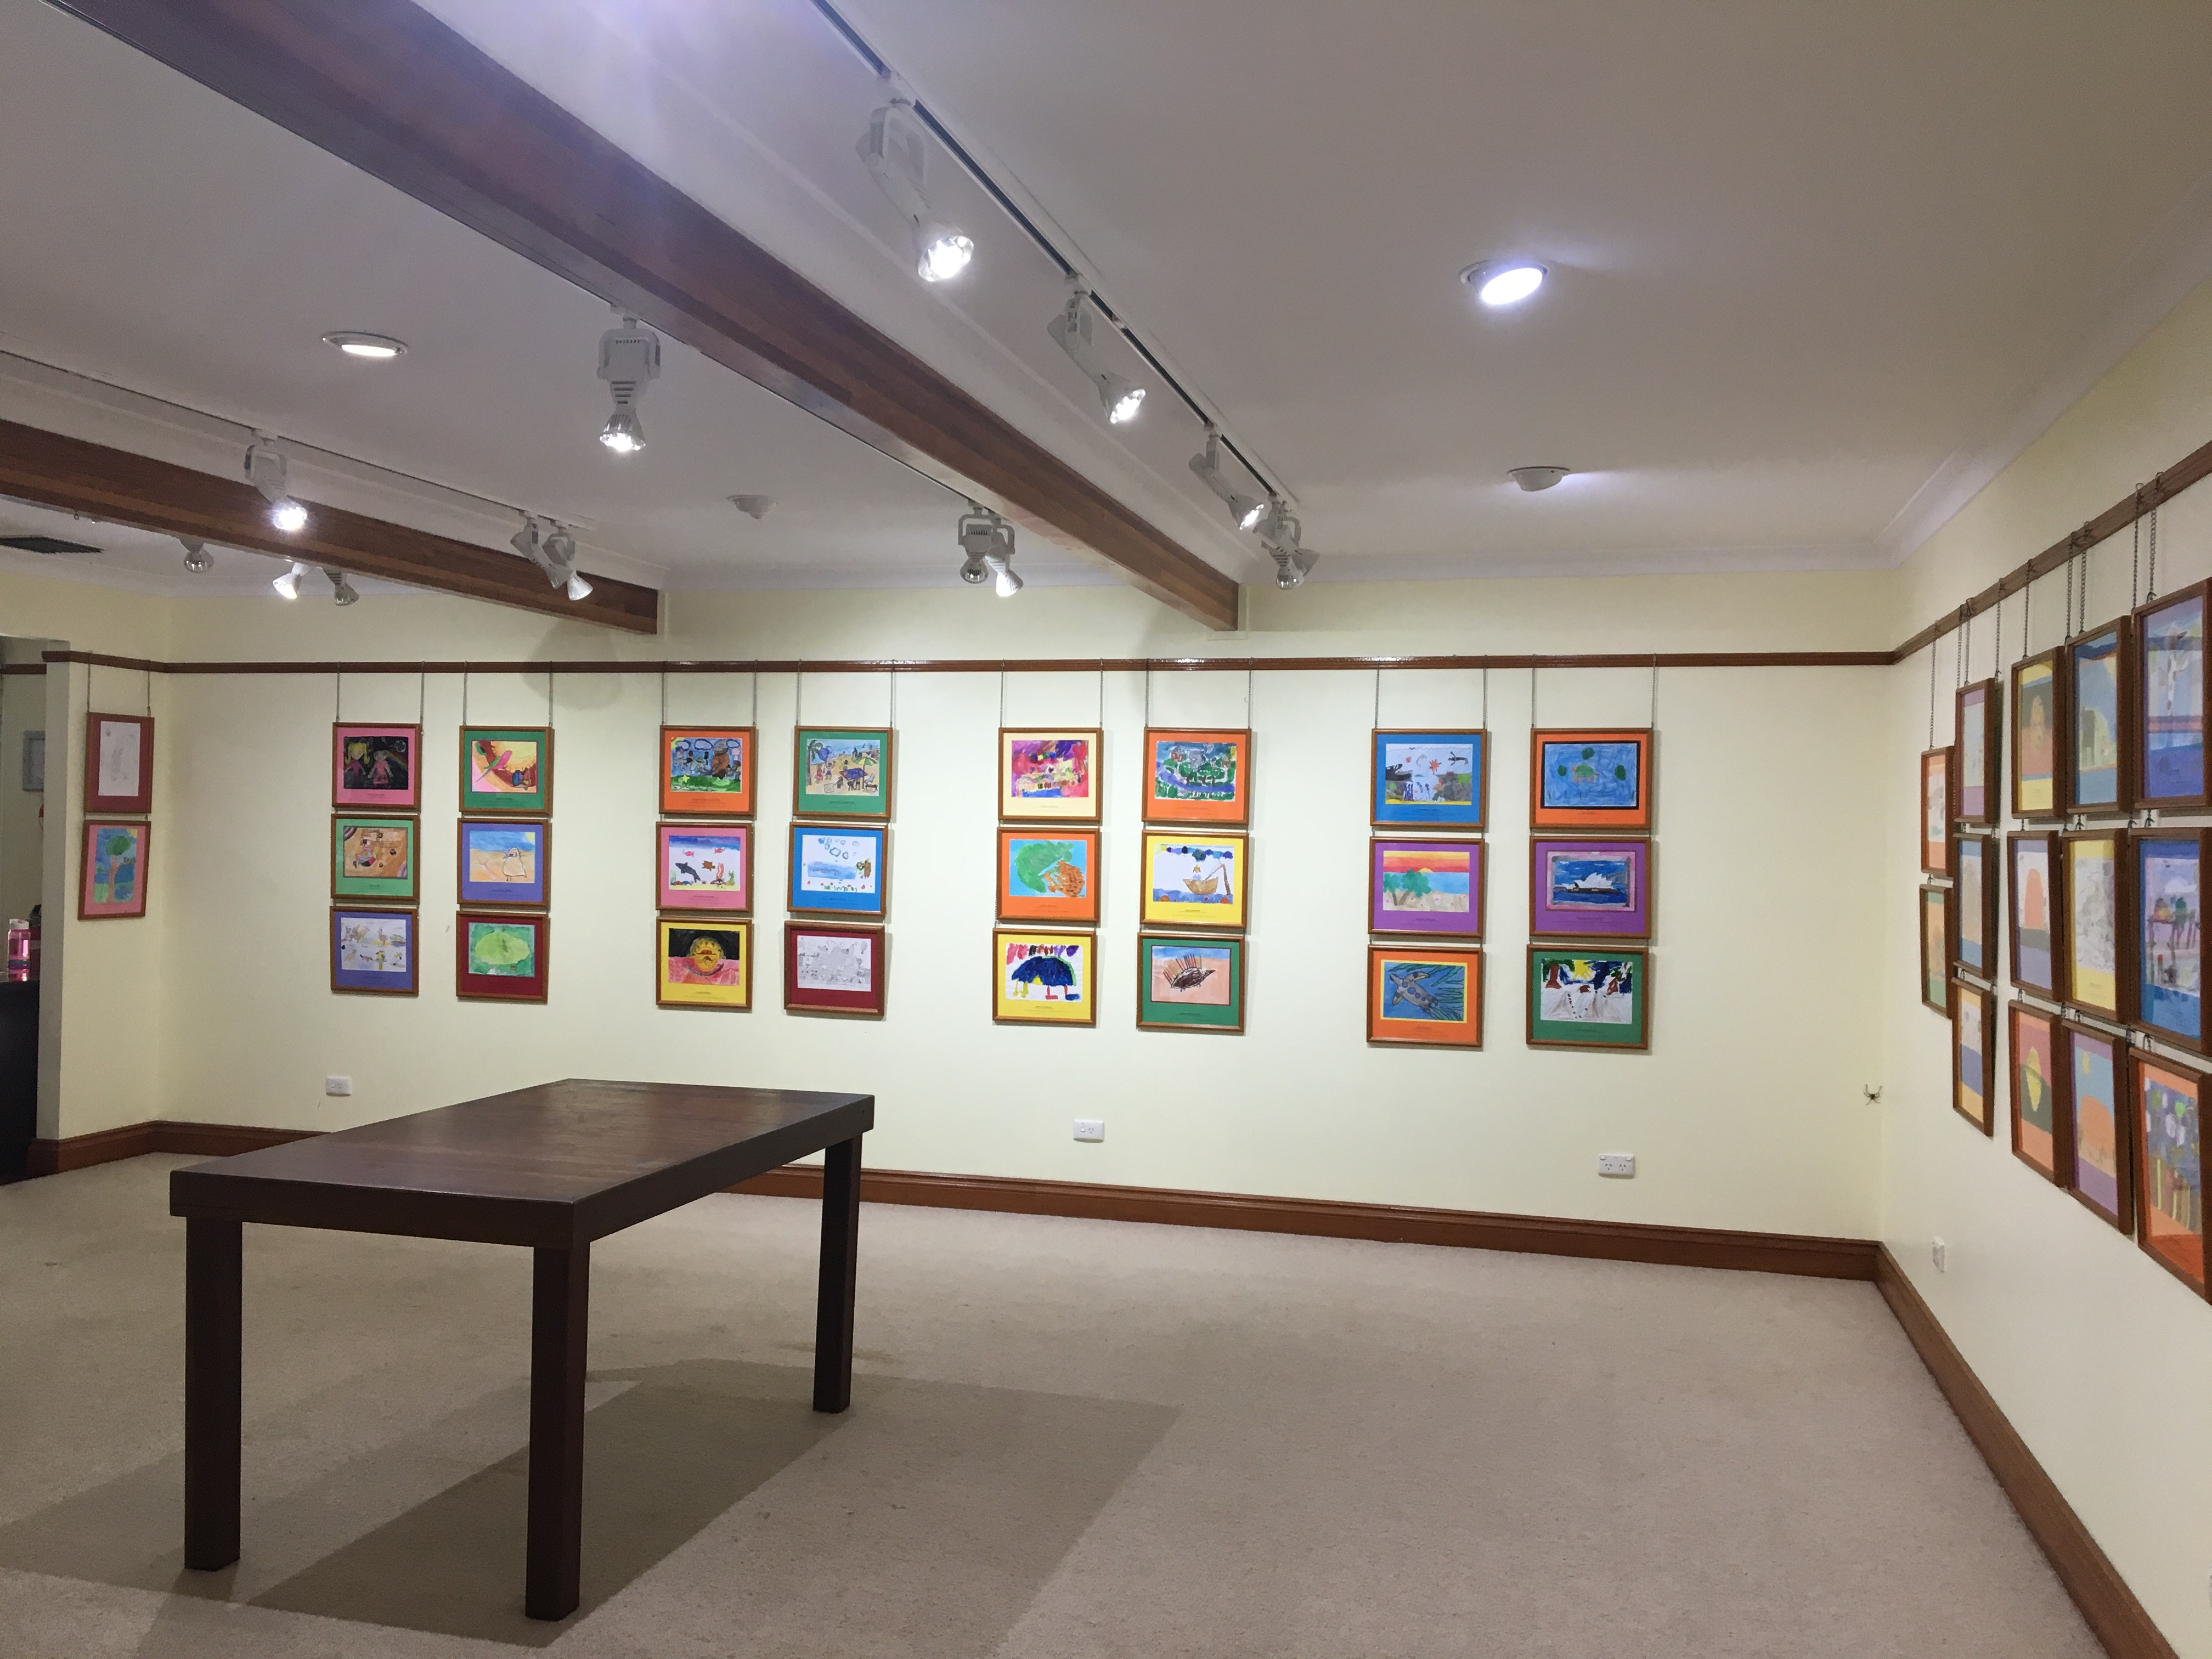 Artworks on display awaiting announcement of primary school winners